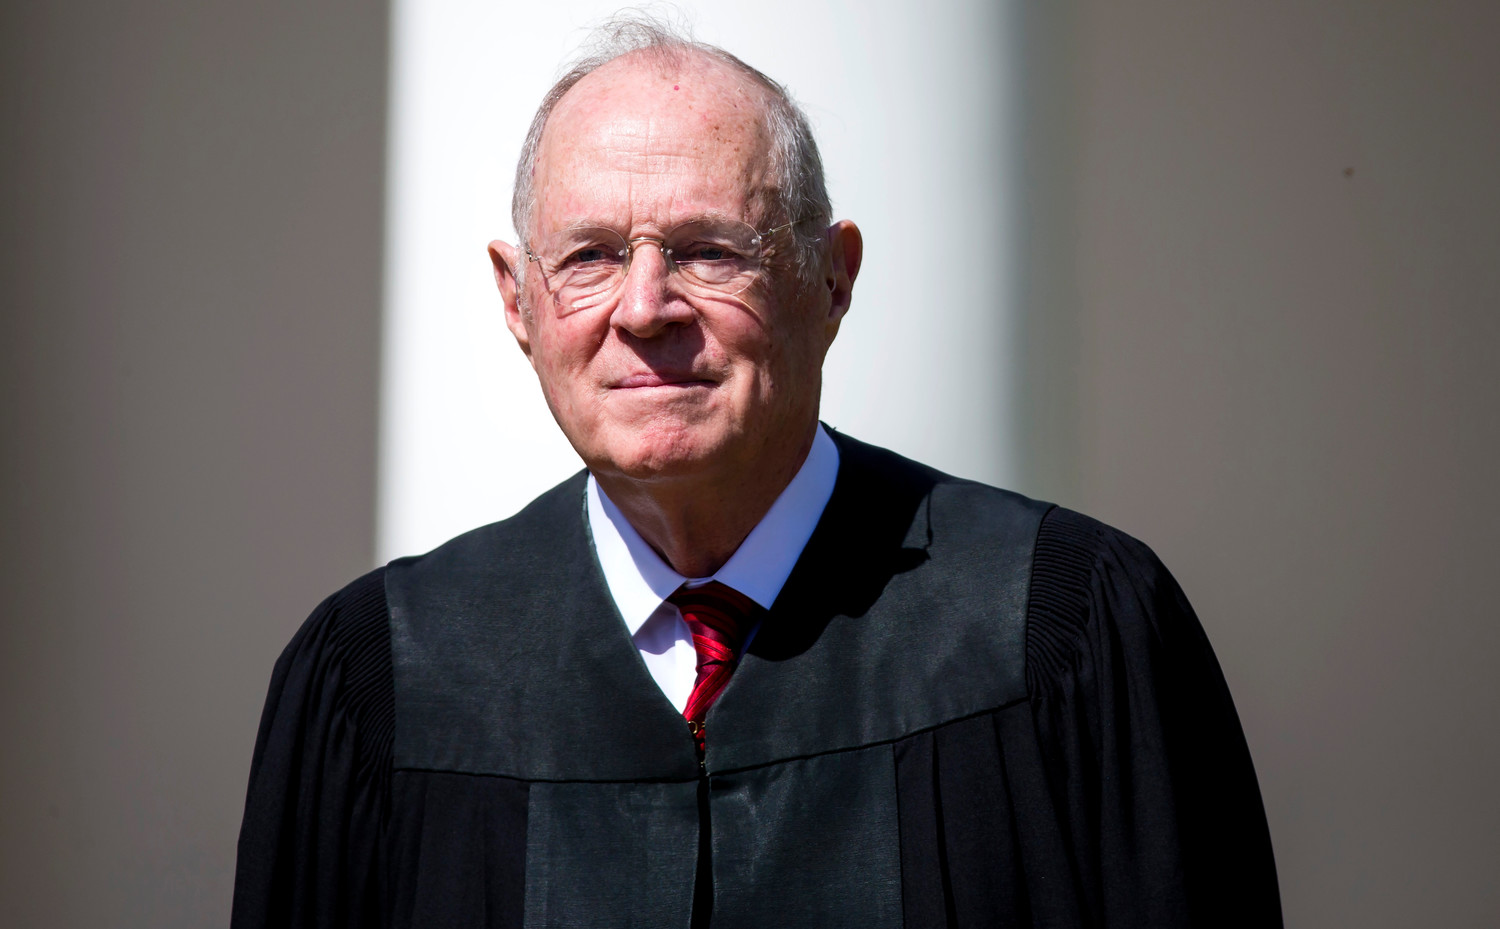 Supreme Court Associate Justice Anthony Kennedy at the White House April 10, 2017.